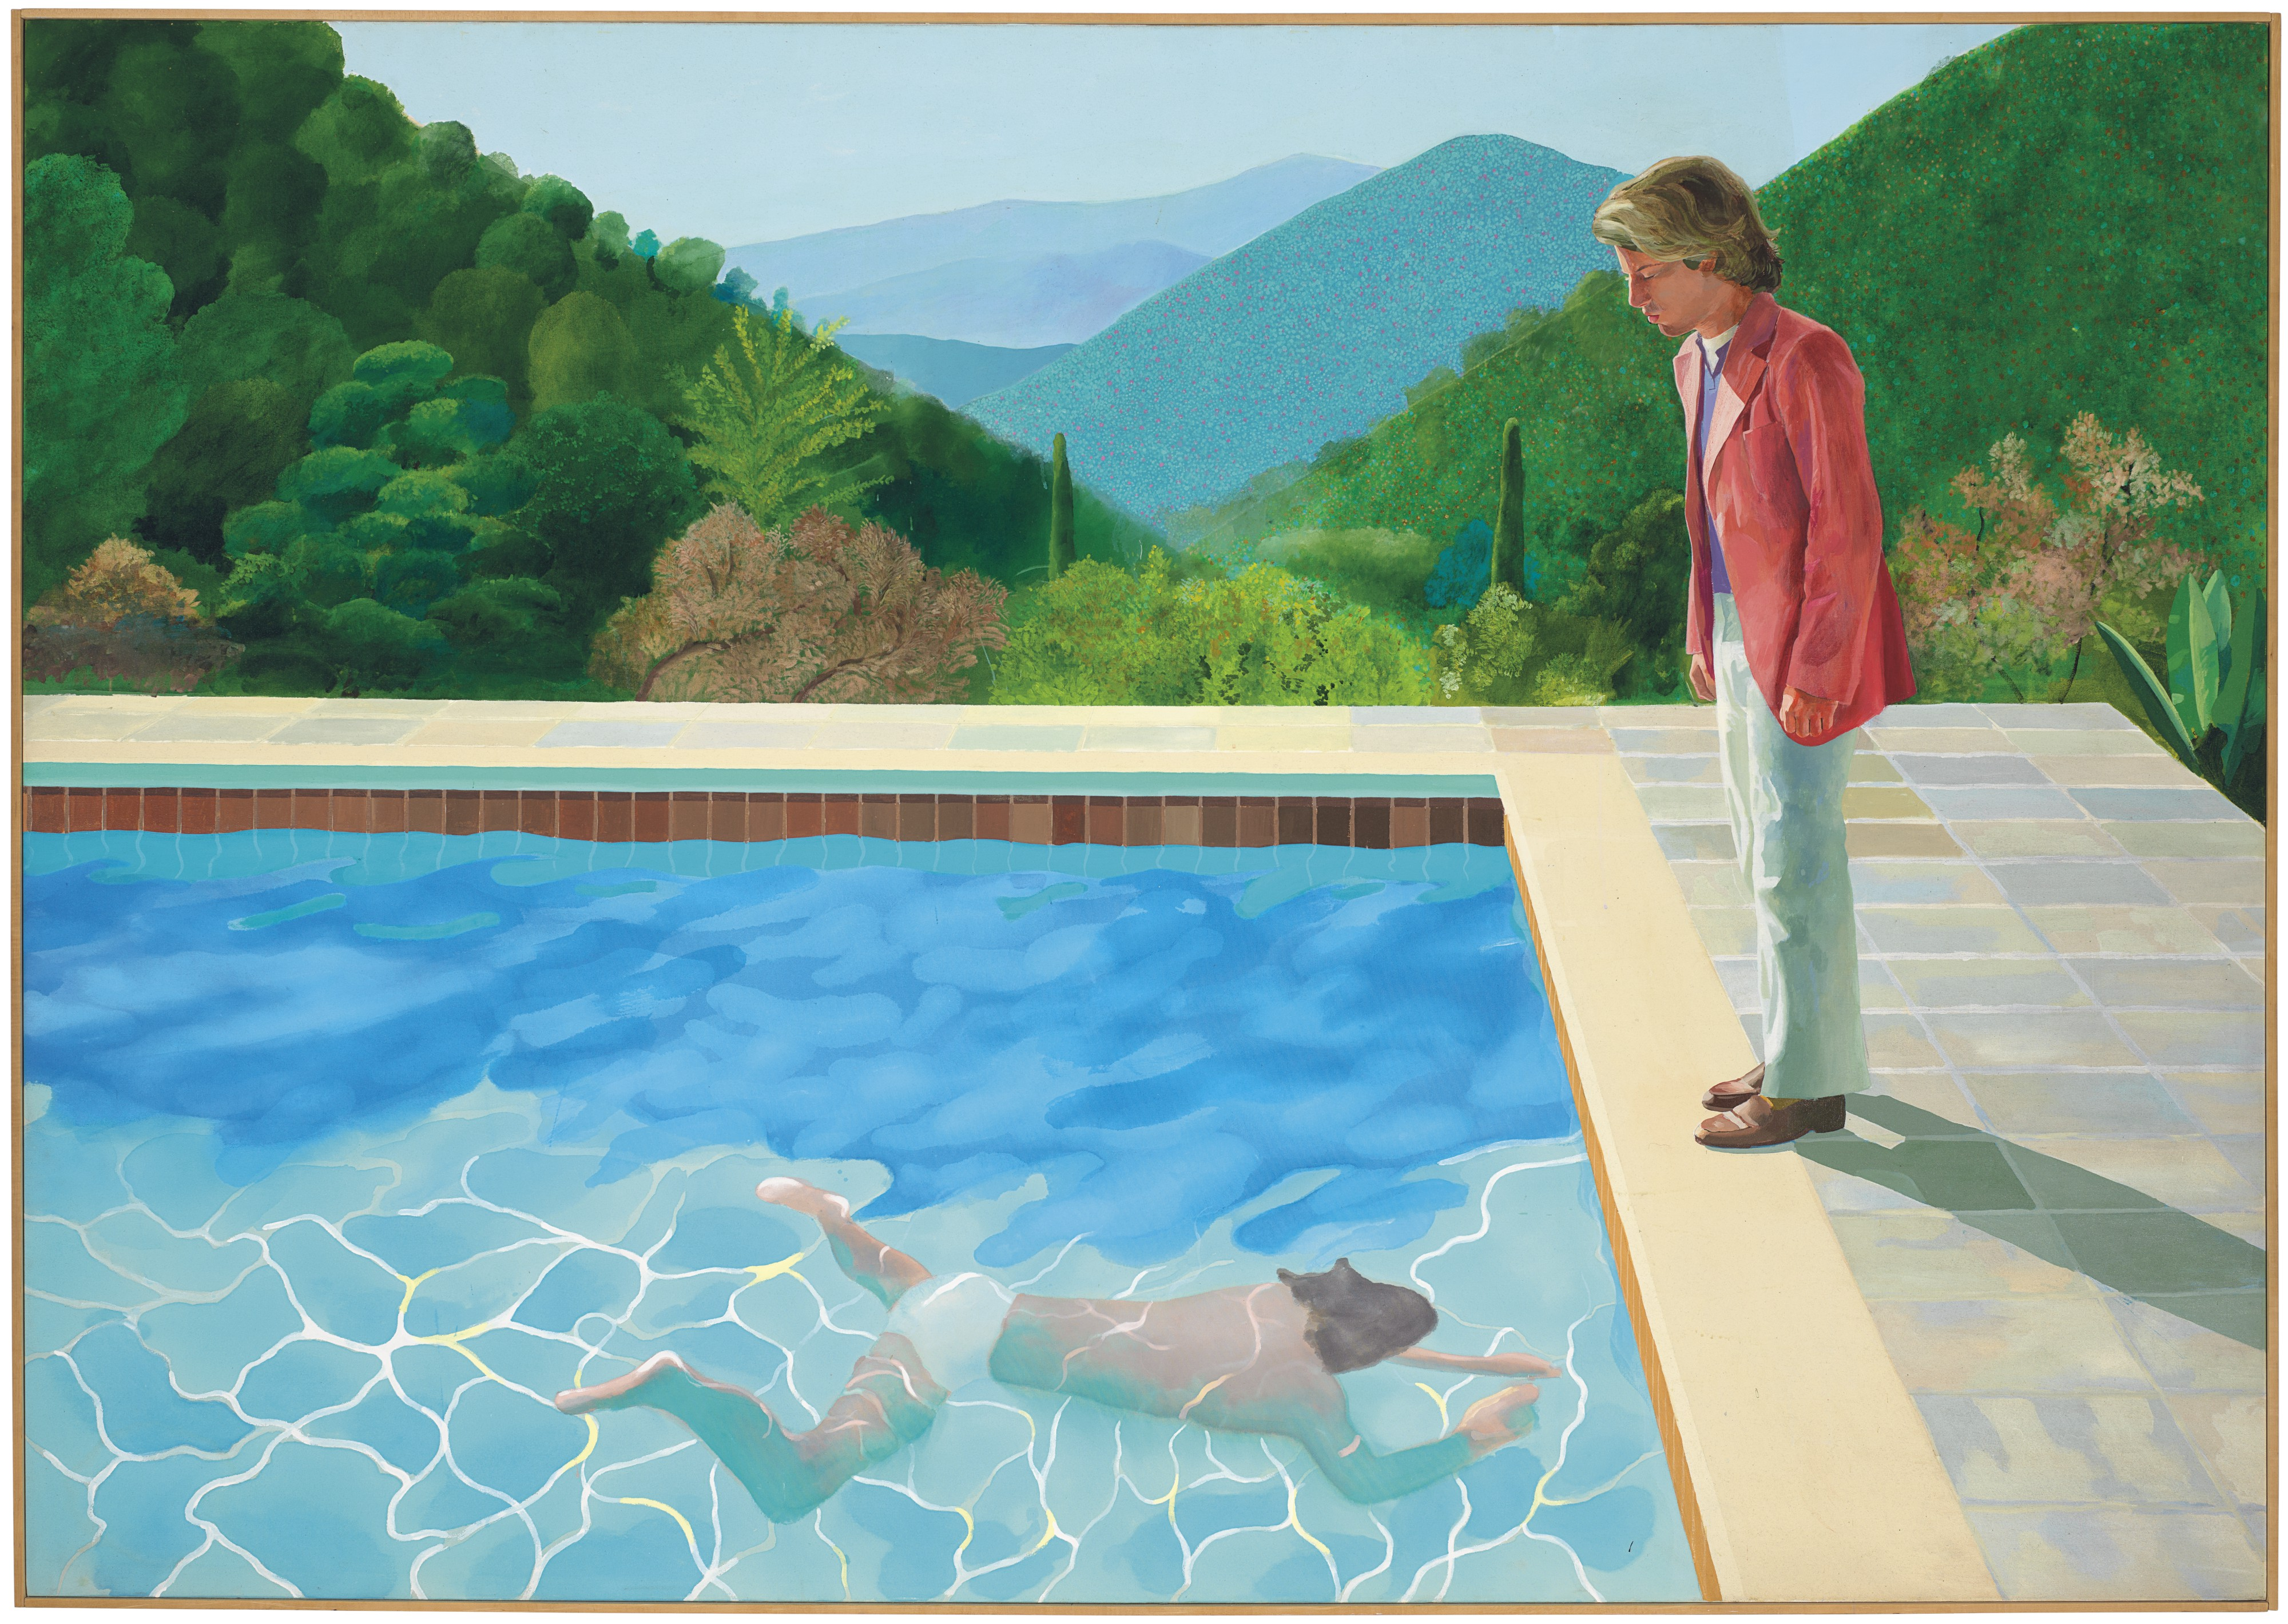 A pool painting by David Hockney is set to become the most expensive by a living artist